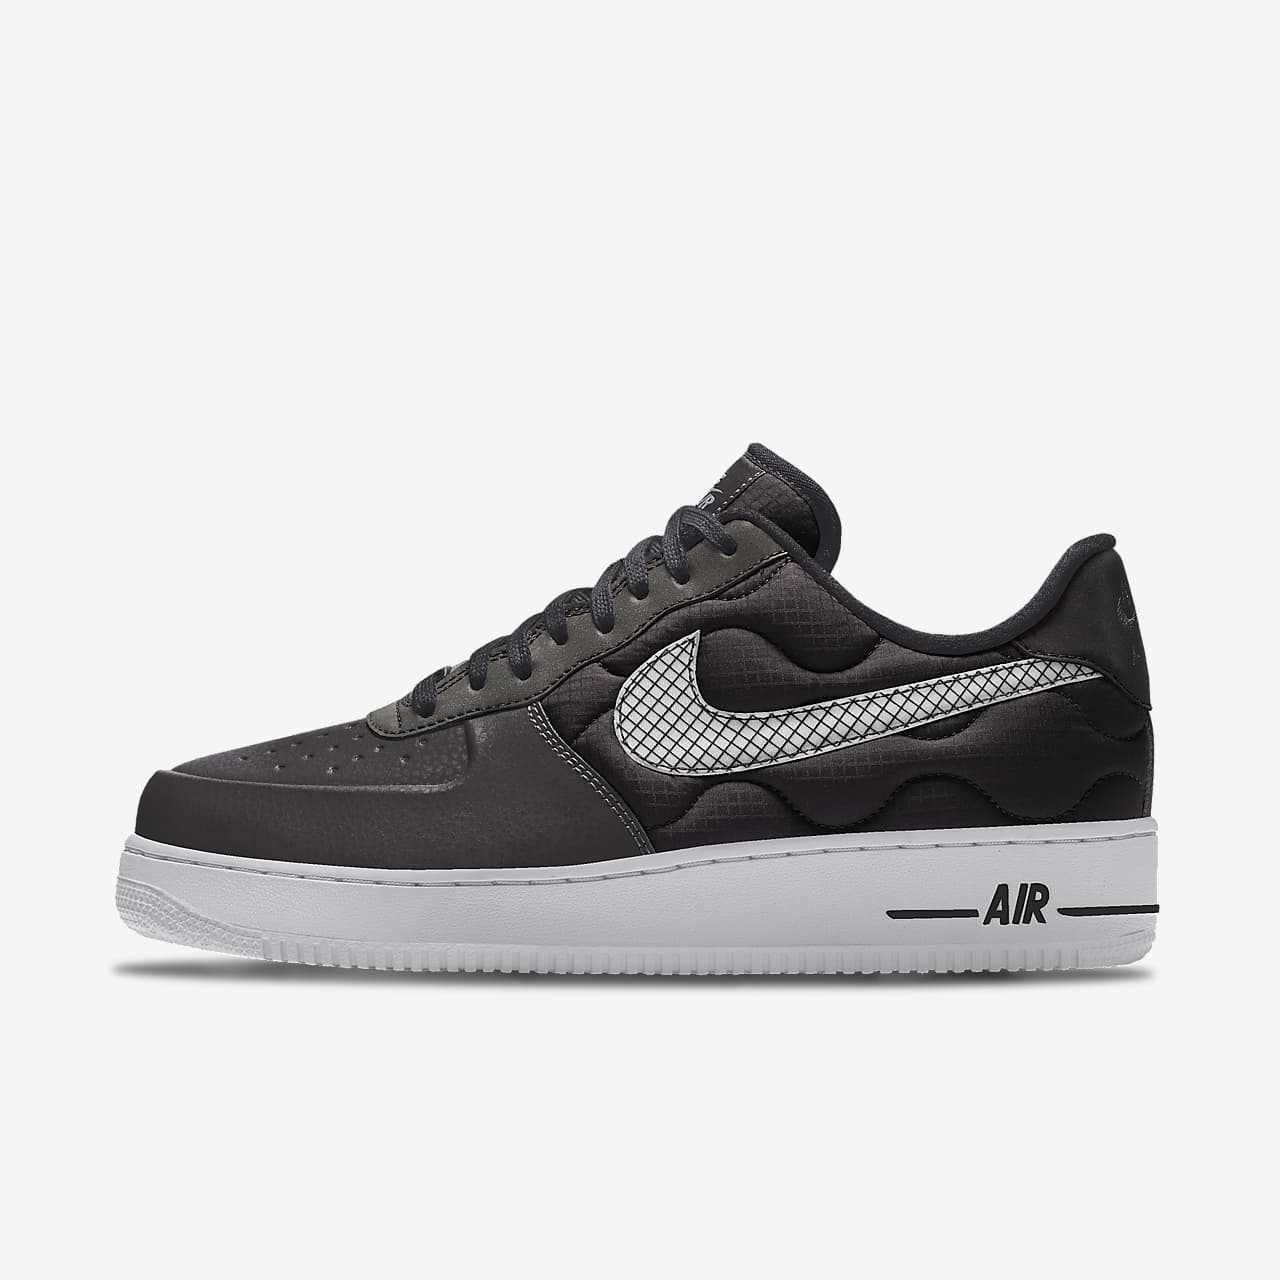 Nike Air Force 1 Low 3M™ By You Custom Shoe